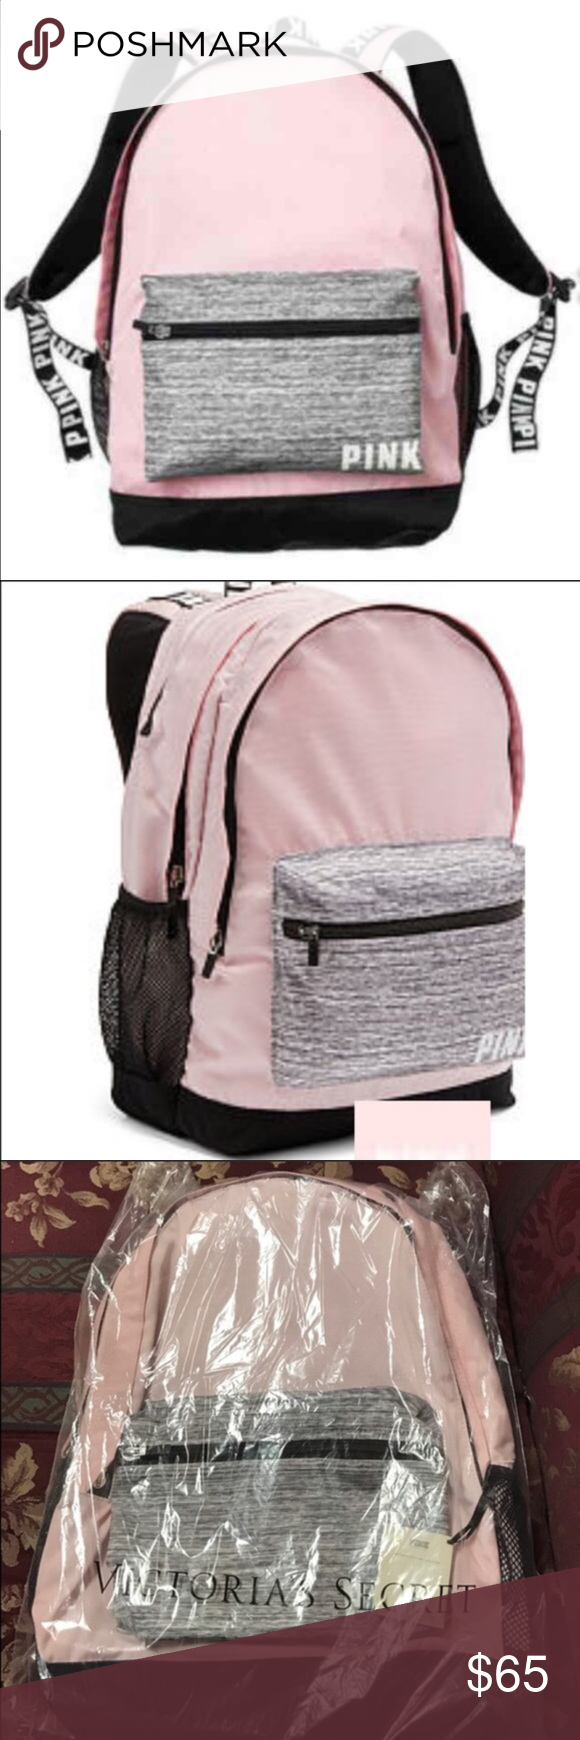 0a5dd7165ca8 Selling this BNIP Victoria Secret Pink Campus Backpack on Poshmark! My  username is  kristie583.  shopmycloset  poshmark  fashion  shopping  style   forsale ...